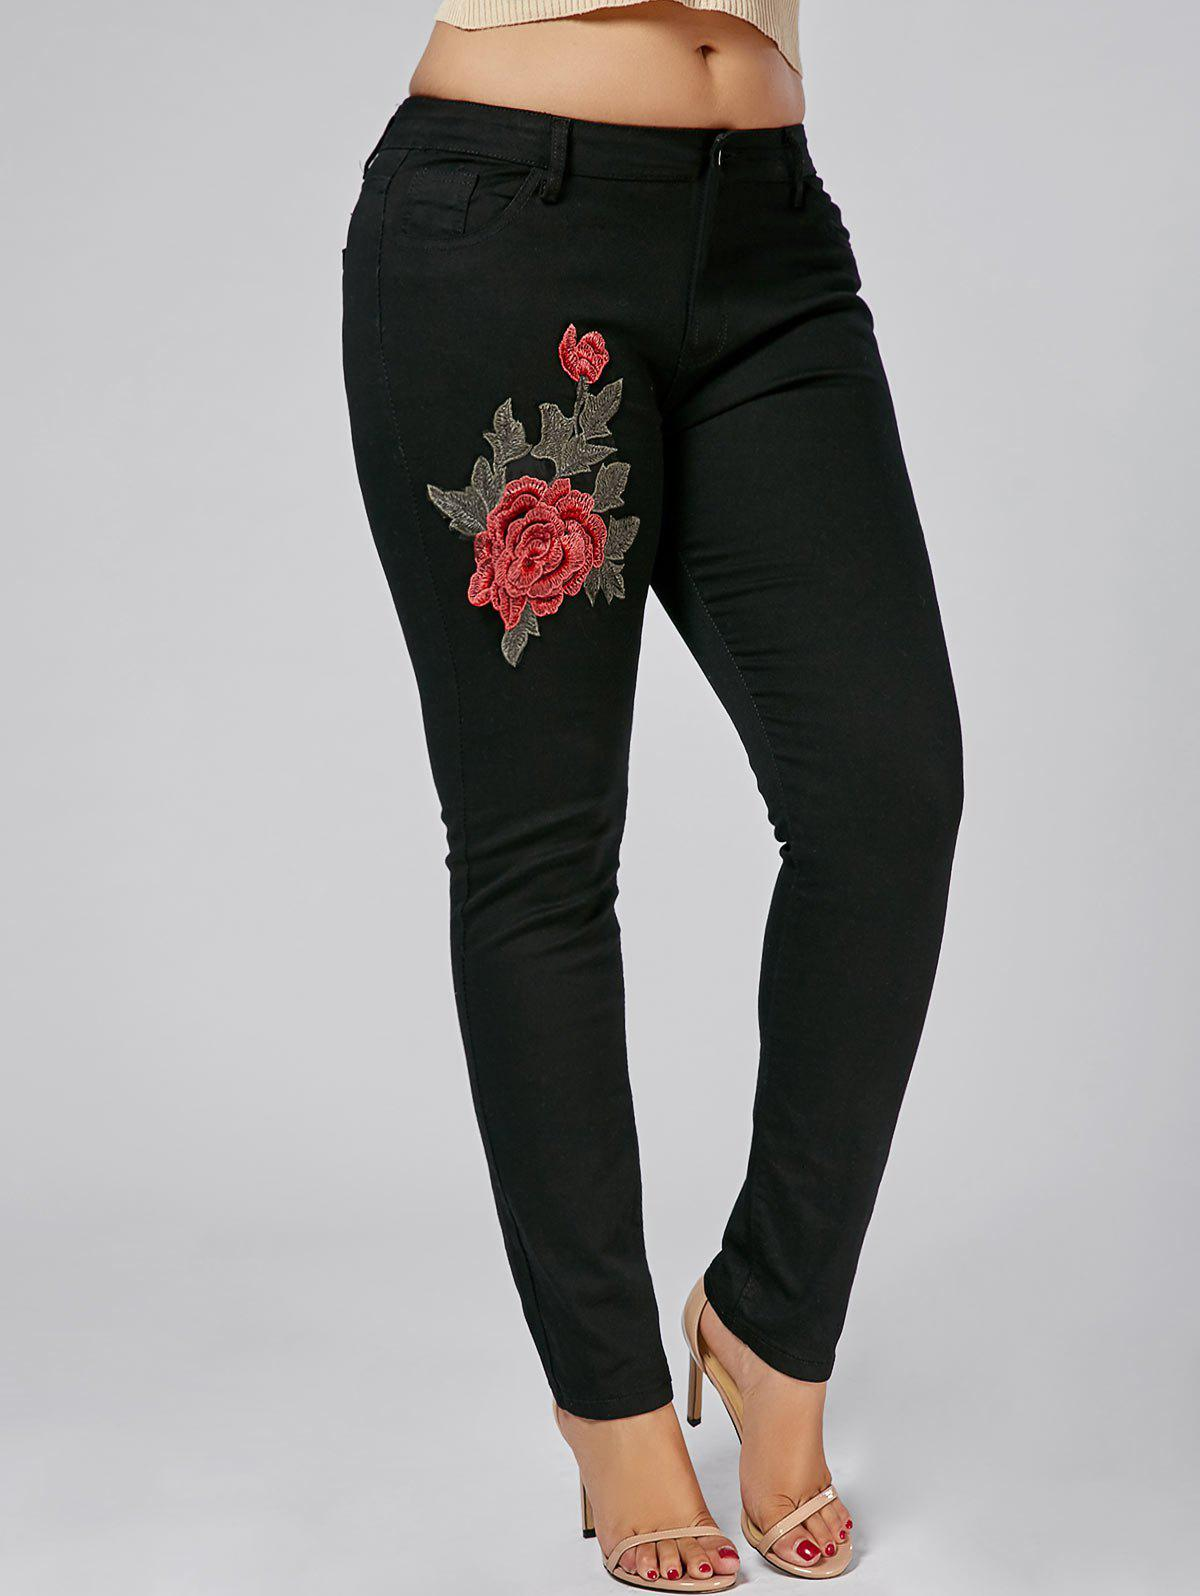 Plus Size Embroidered Tight JeansWOMEN<br><br>Size: 2XL; Color: BLACK; Style: Fashion; Length: Ninth; Material: Cotton,Jeans,Polyester; Fit Type: Skinny; Waist Type: Low; Closure Type: Zipper Fly; Pattern Type: Floral; Embellishment: Appliques; Pant Style: Pencil Pants; Weight: 0.4700kg; Package Contents: 1 x Jeans;